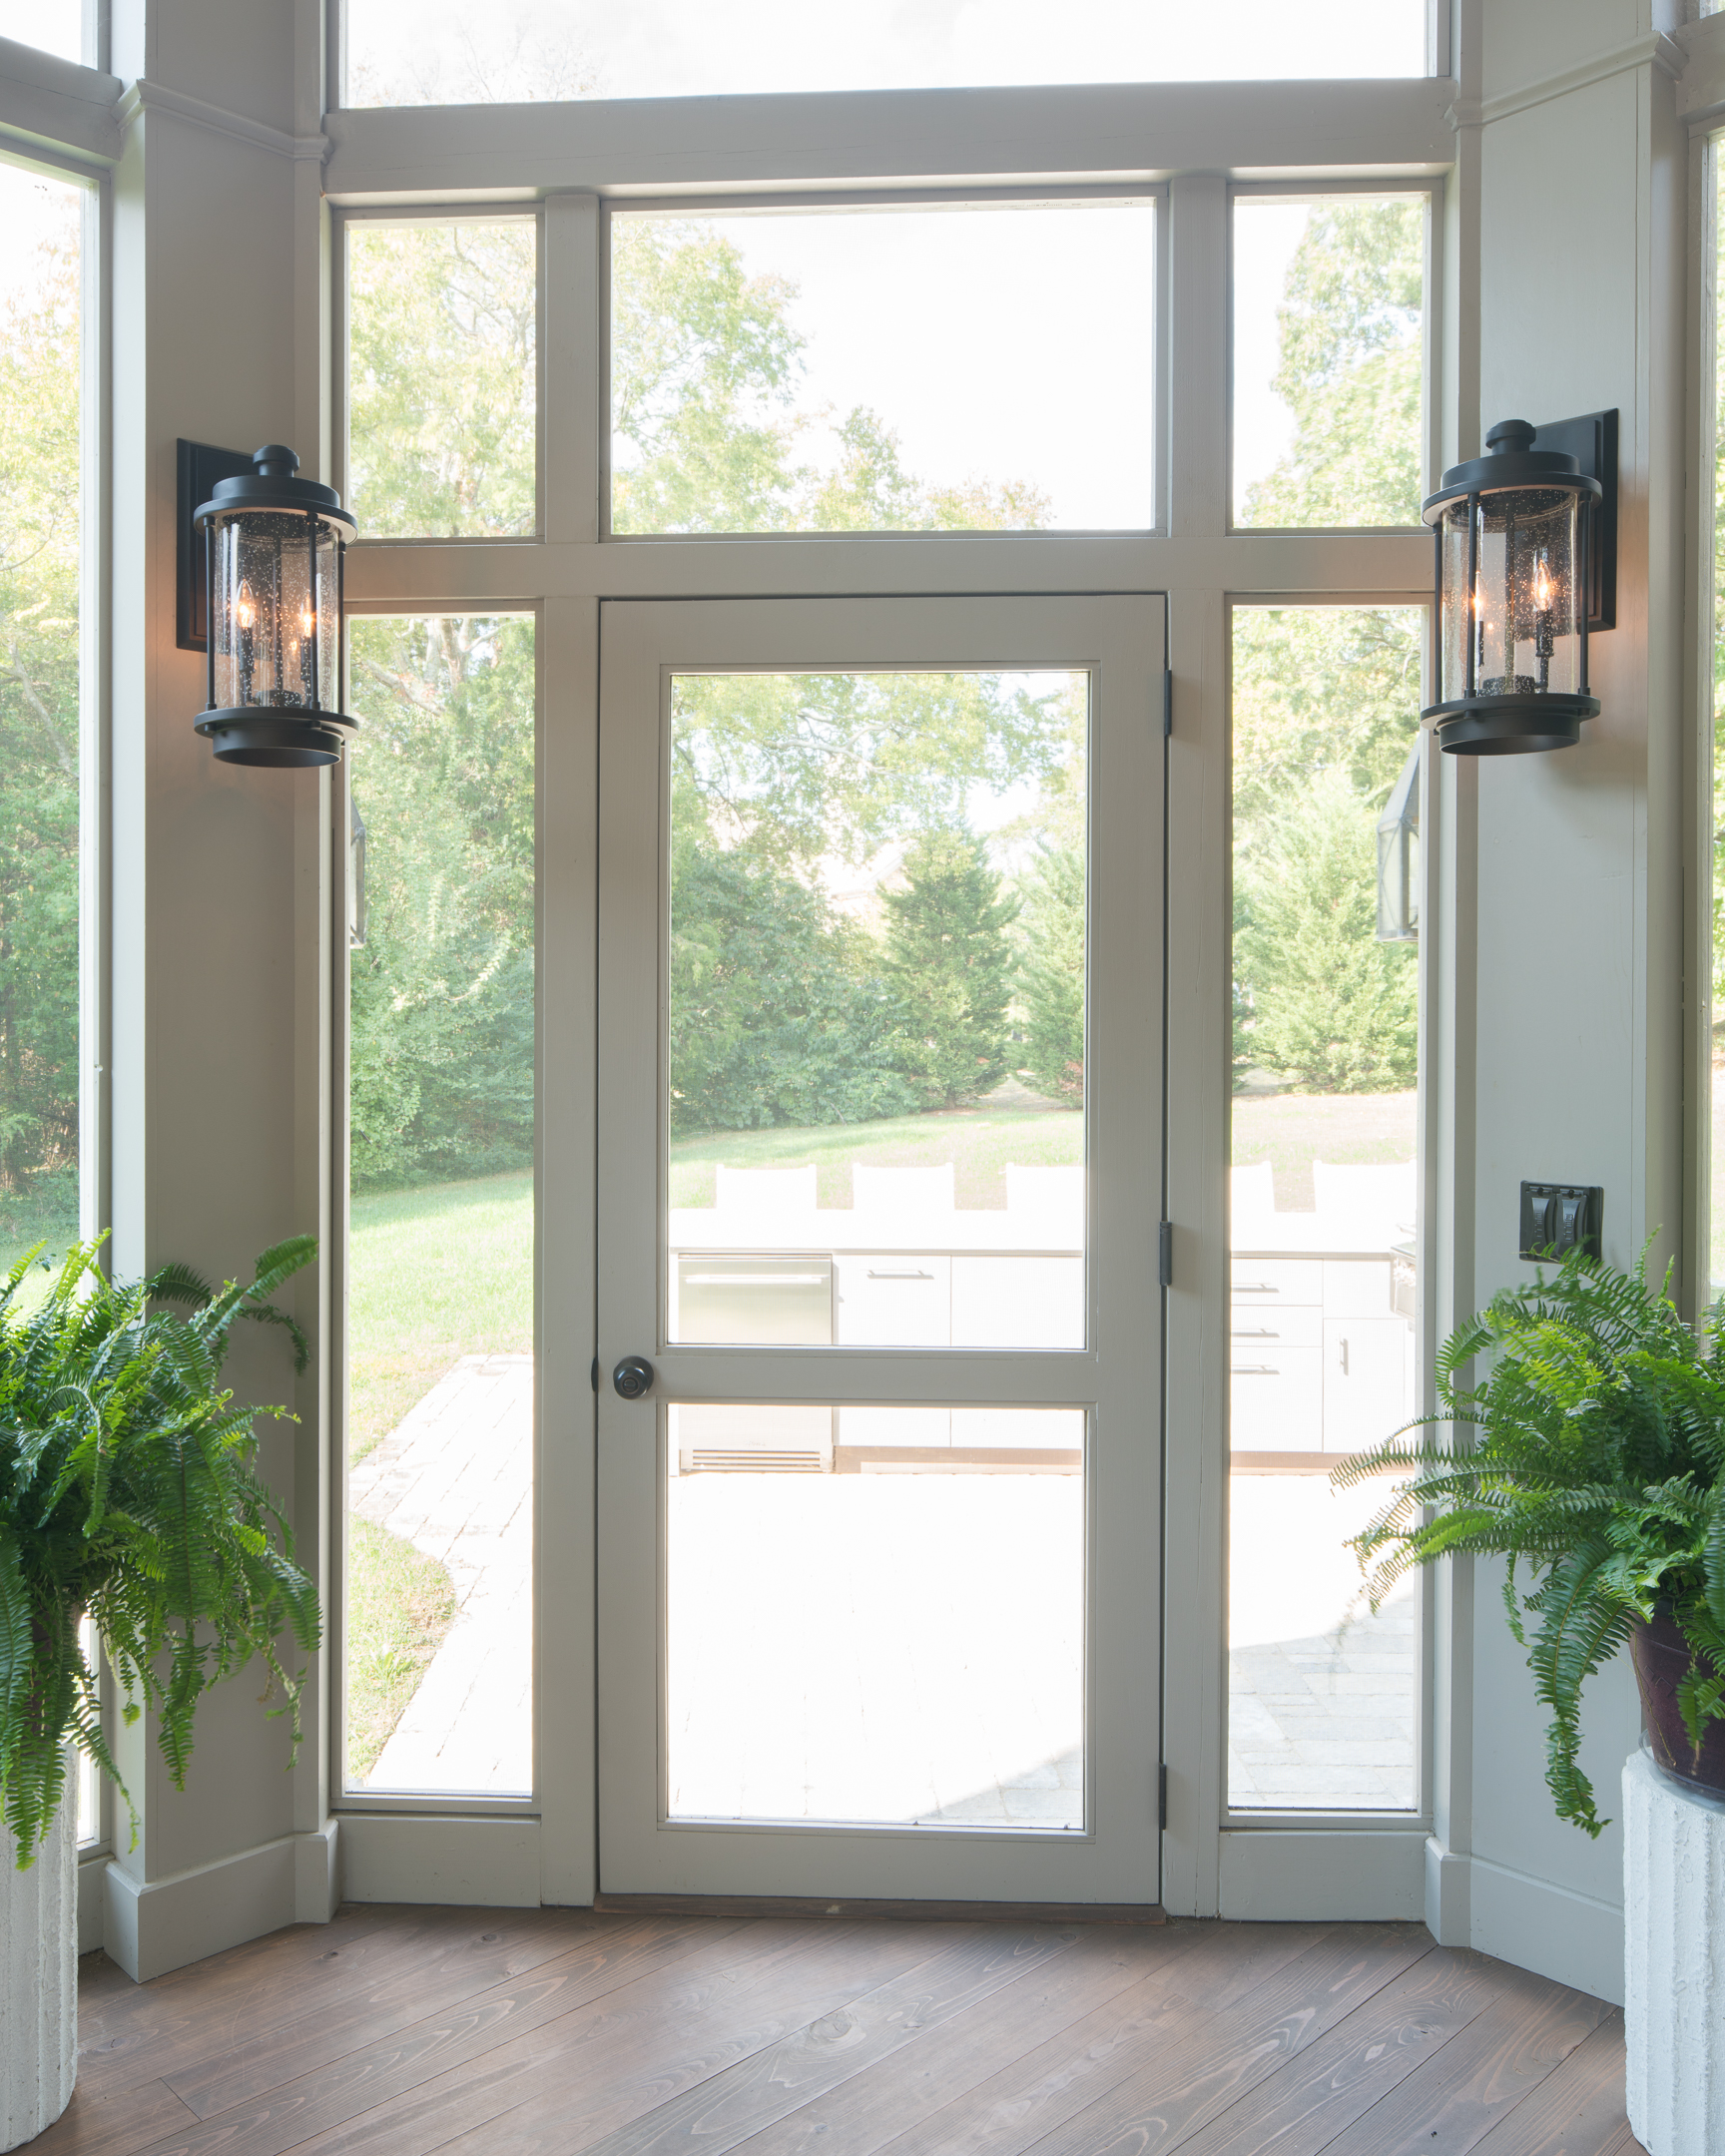 2160 #466534 Open Style Single Doors The Porch CompanyThe Porch Company pic Cypress Exterior Doors 45511728